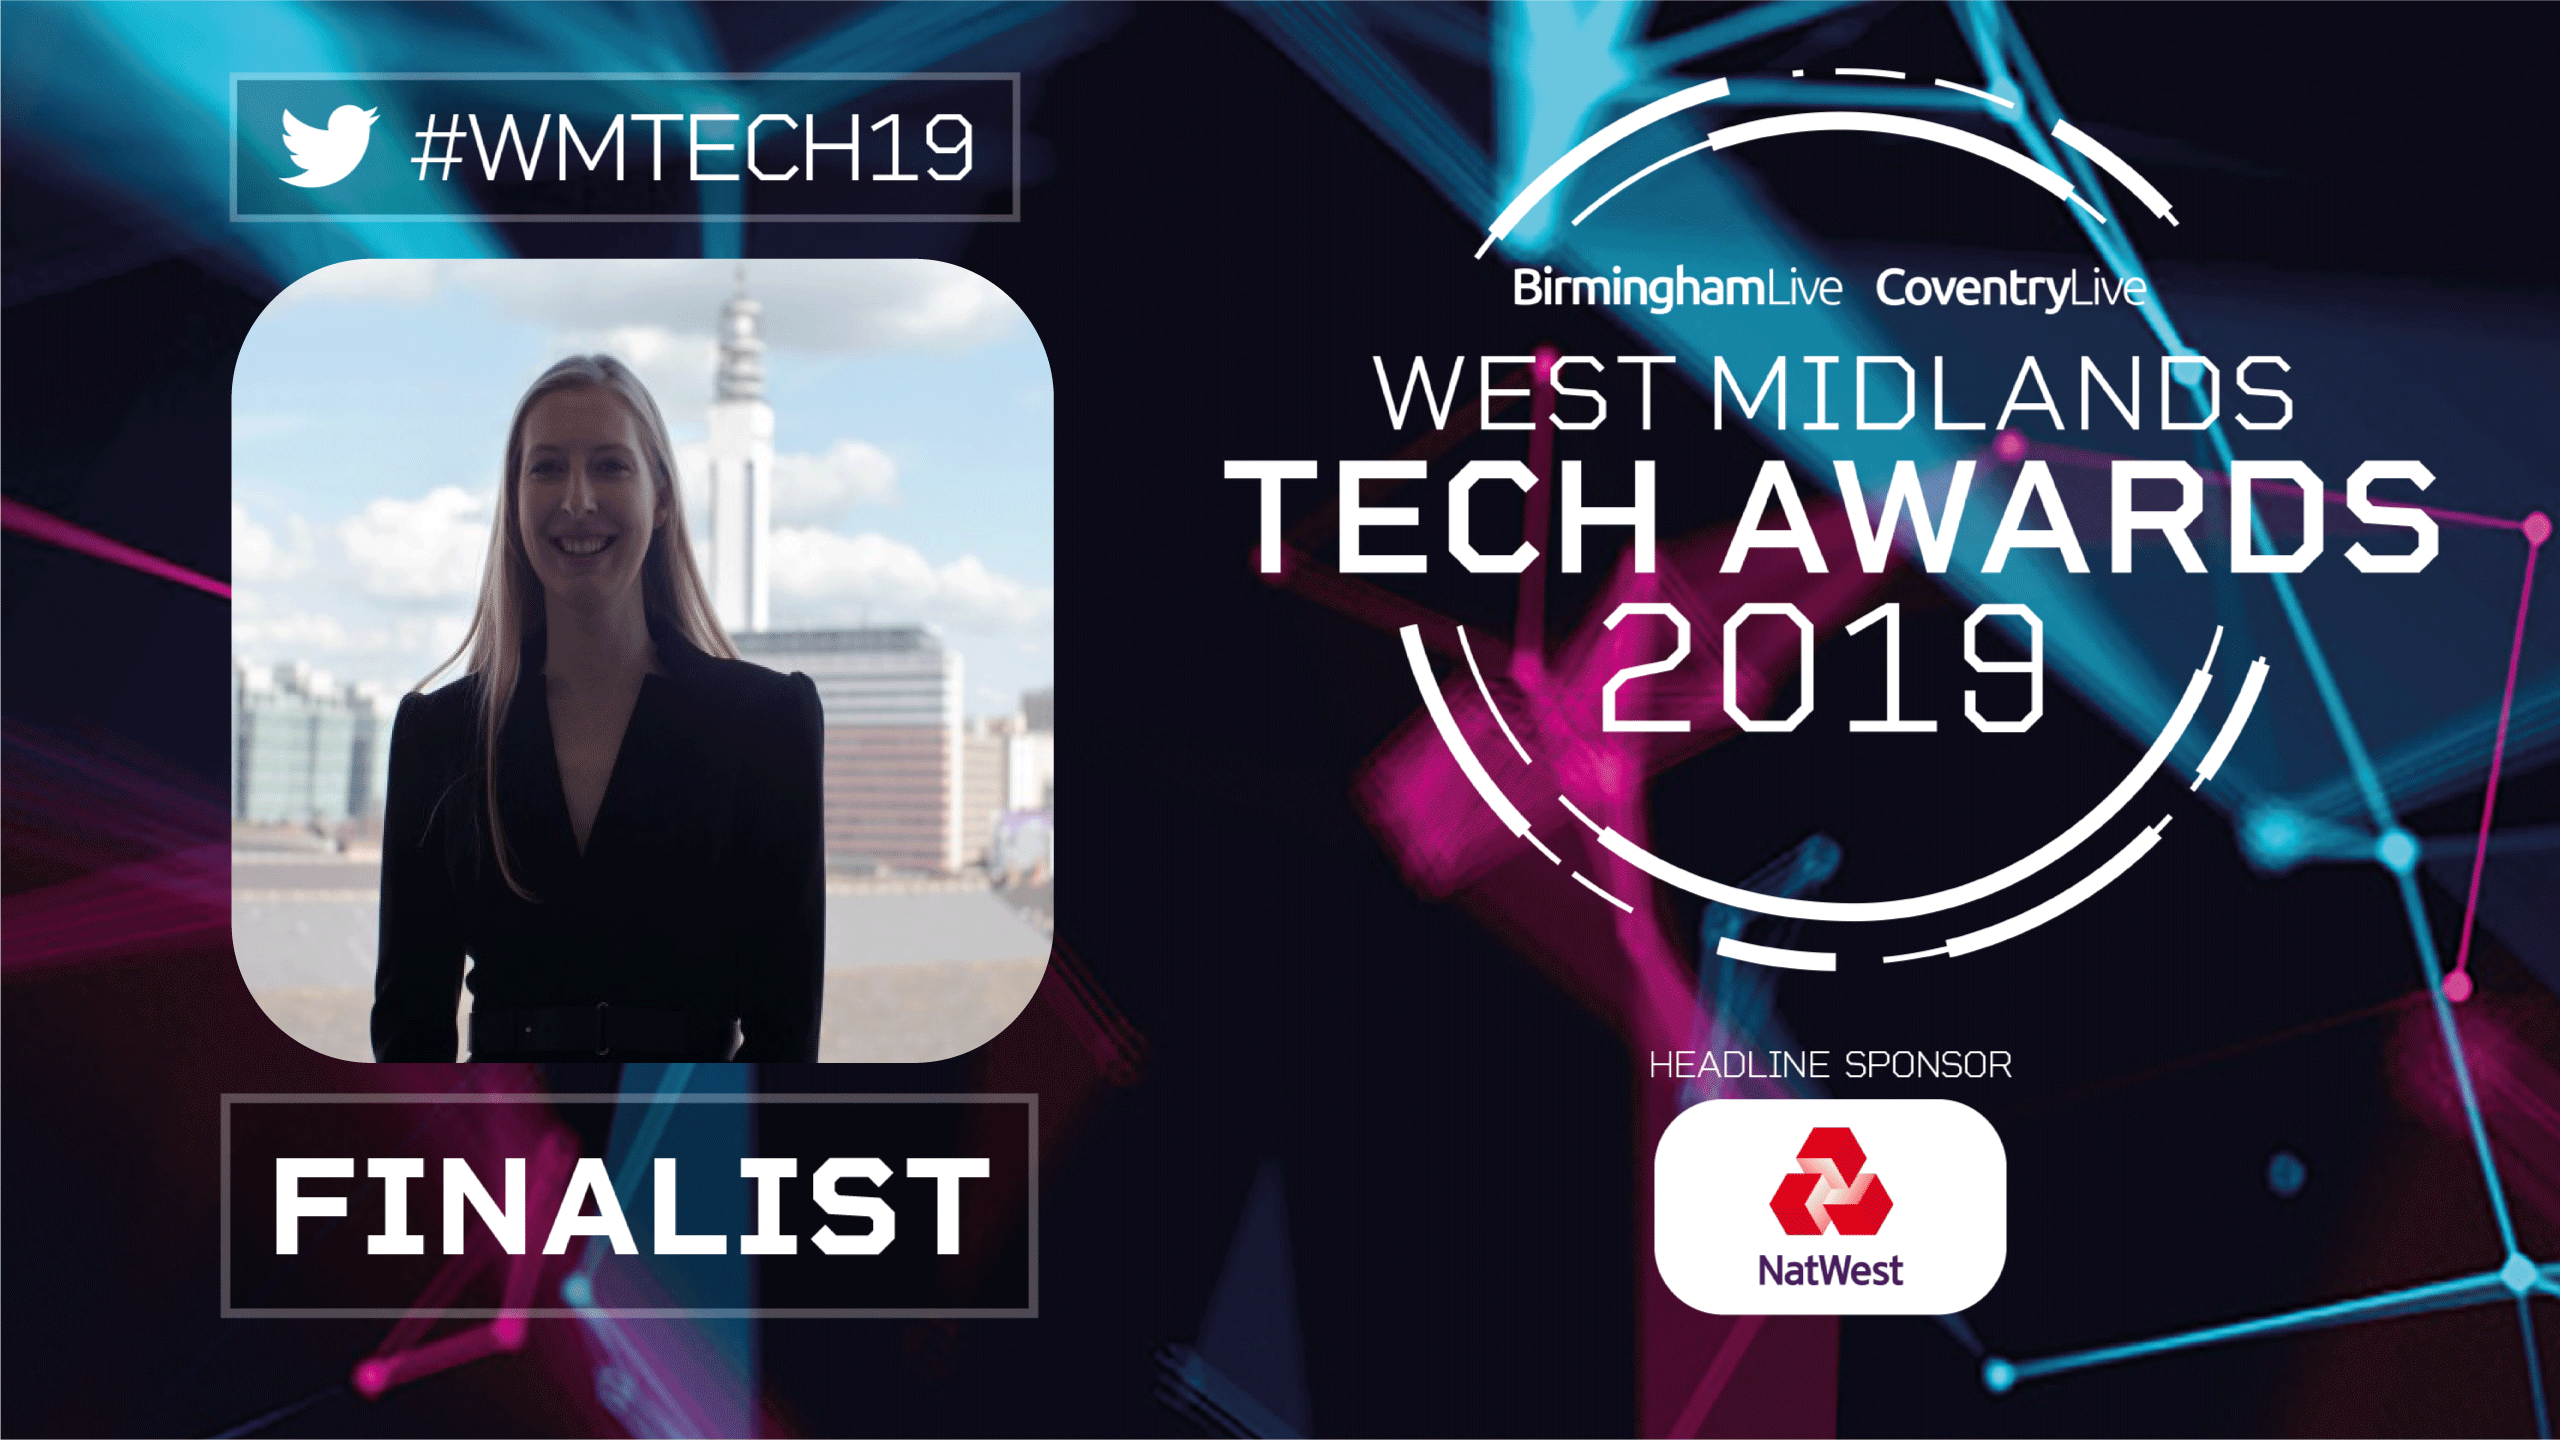 West Midlands Tech Awards Finalist 2019 Natural HR